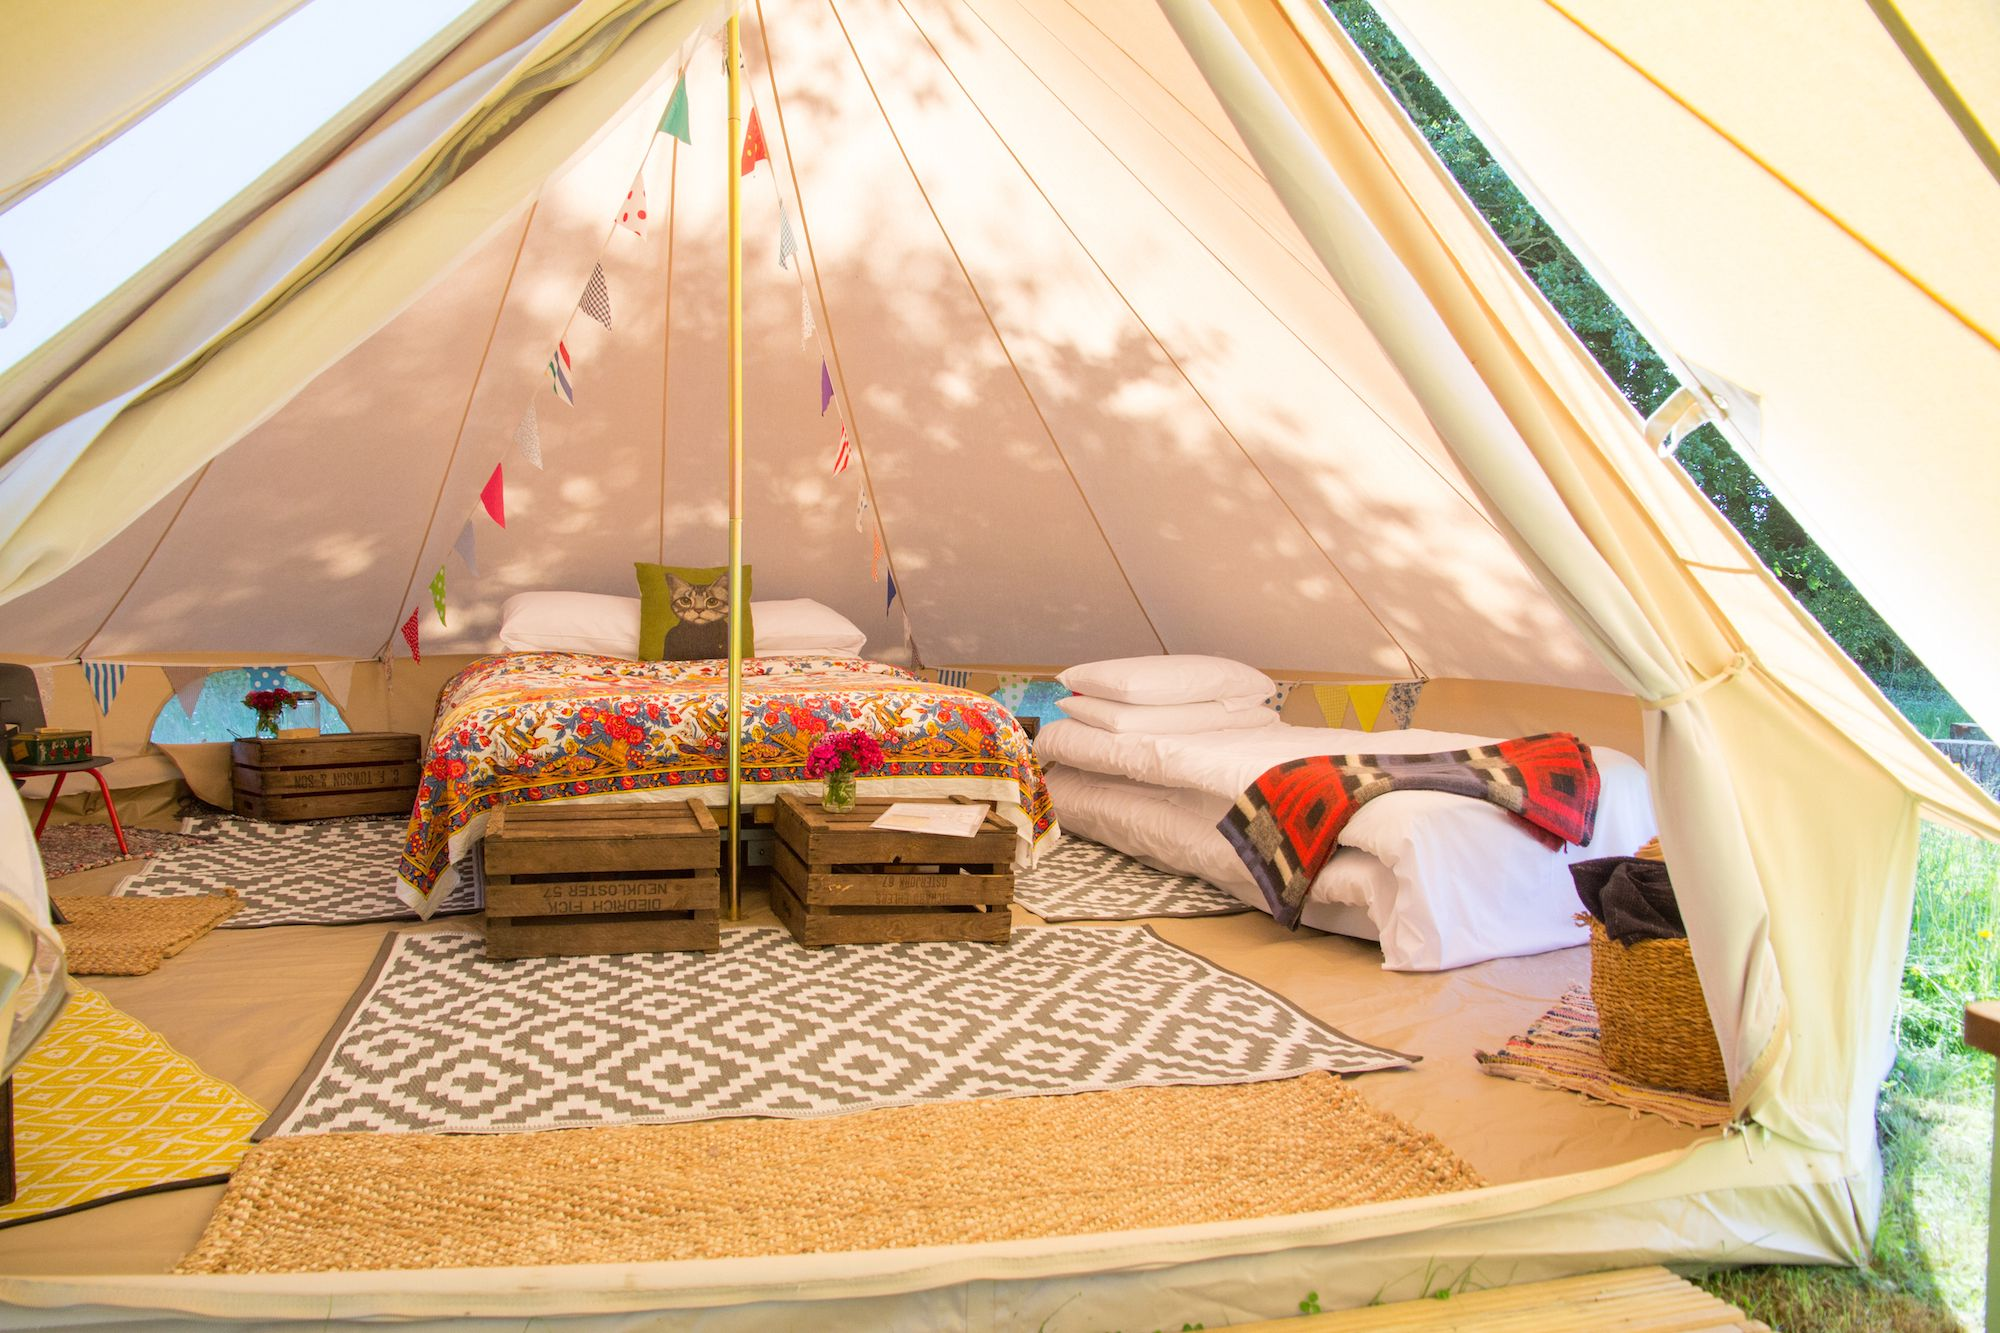 Snipe at Amber's Bell Tent Camping at Hopton Court Estate